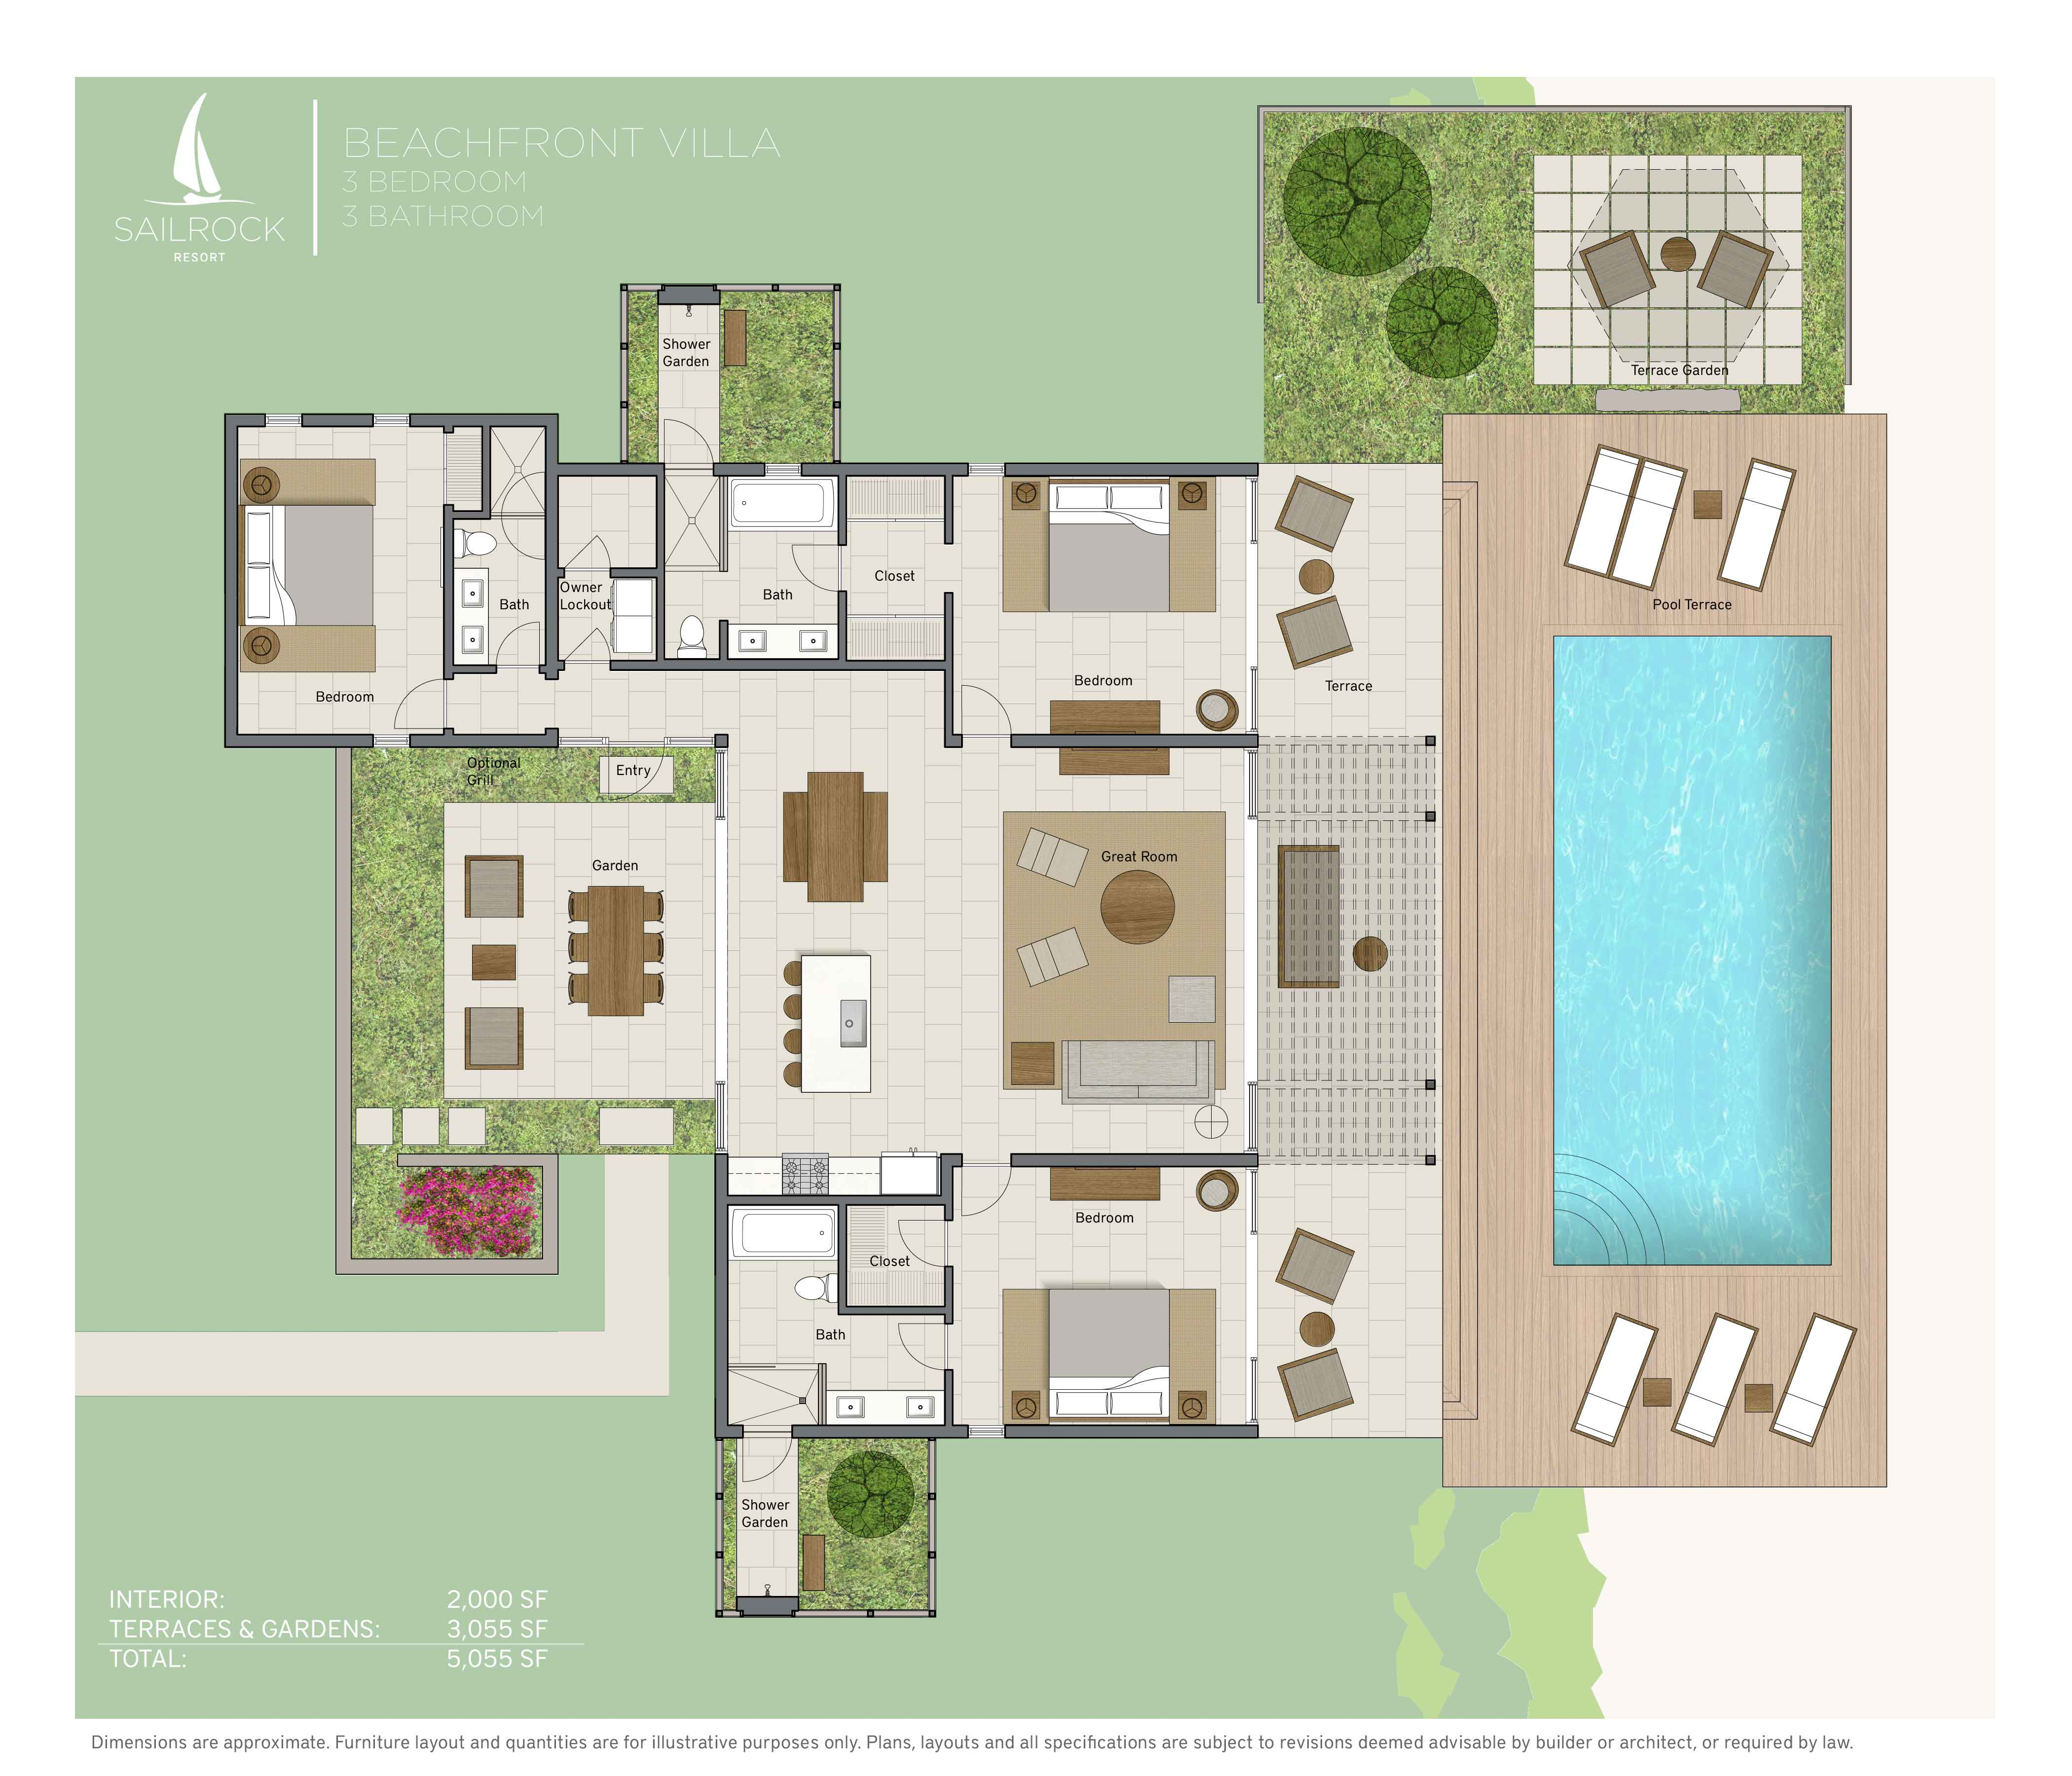 Turks caicos 3 bedroom beach villas sailrock resort 3 bedroom villa floor plans